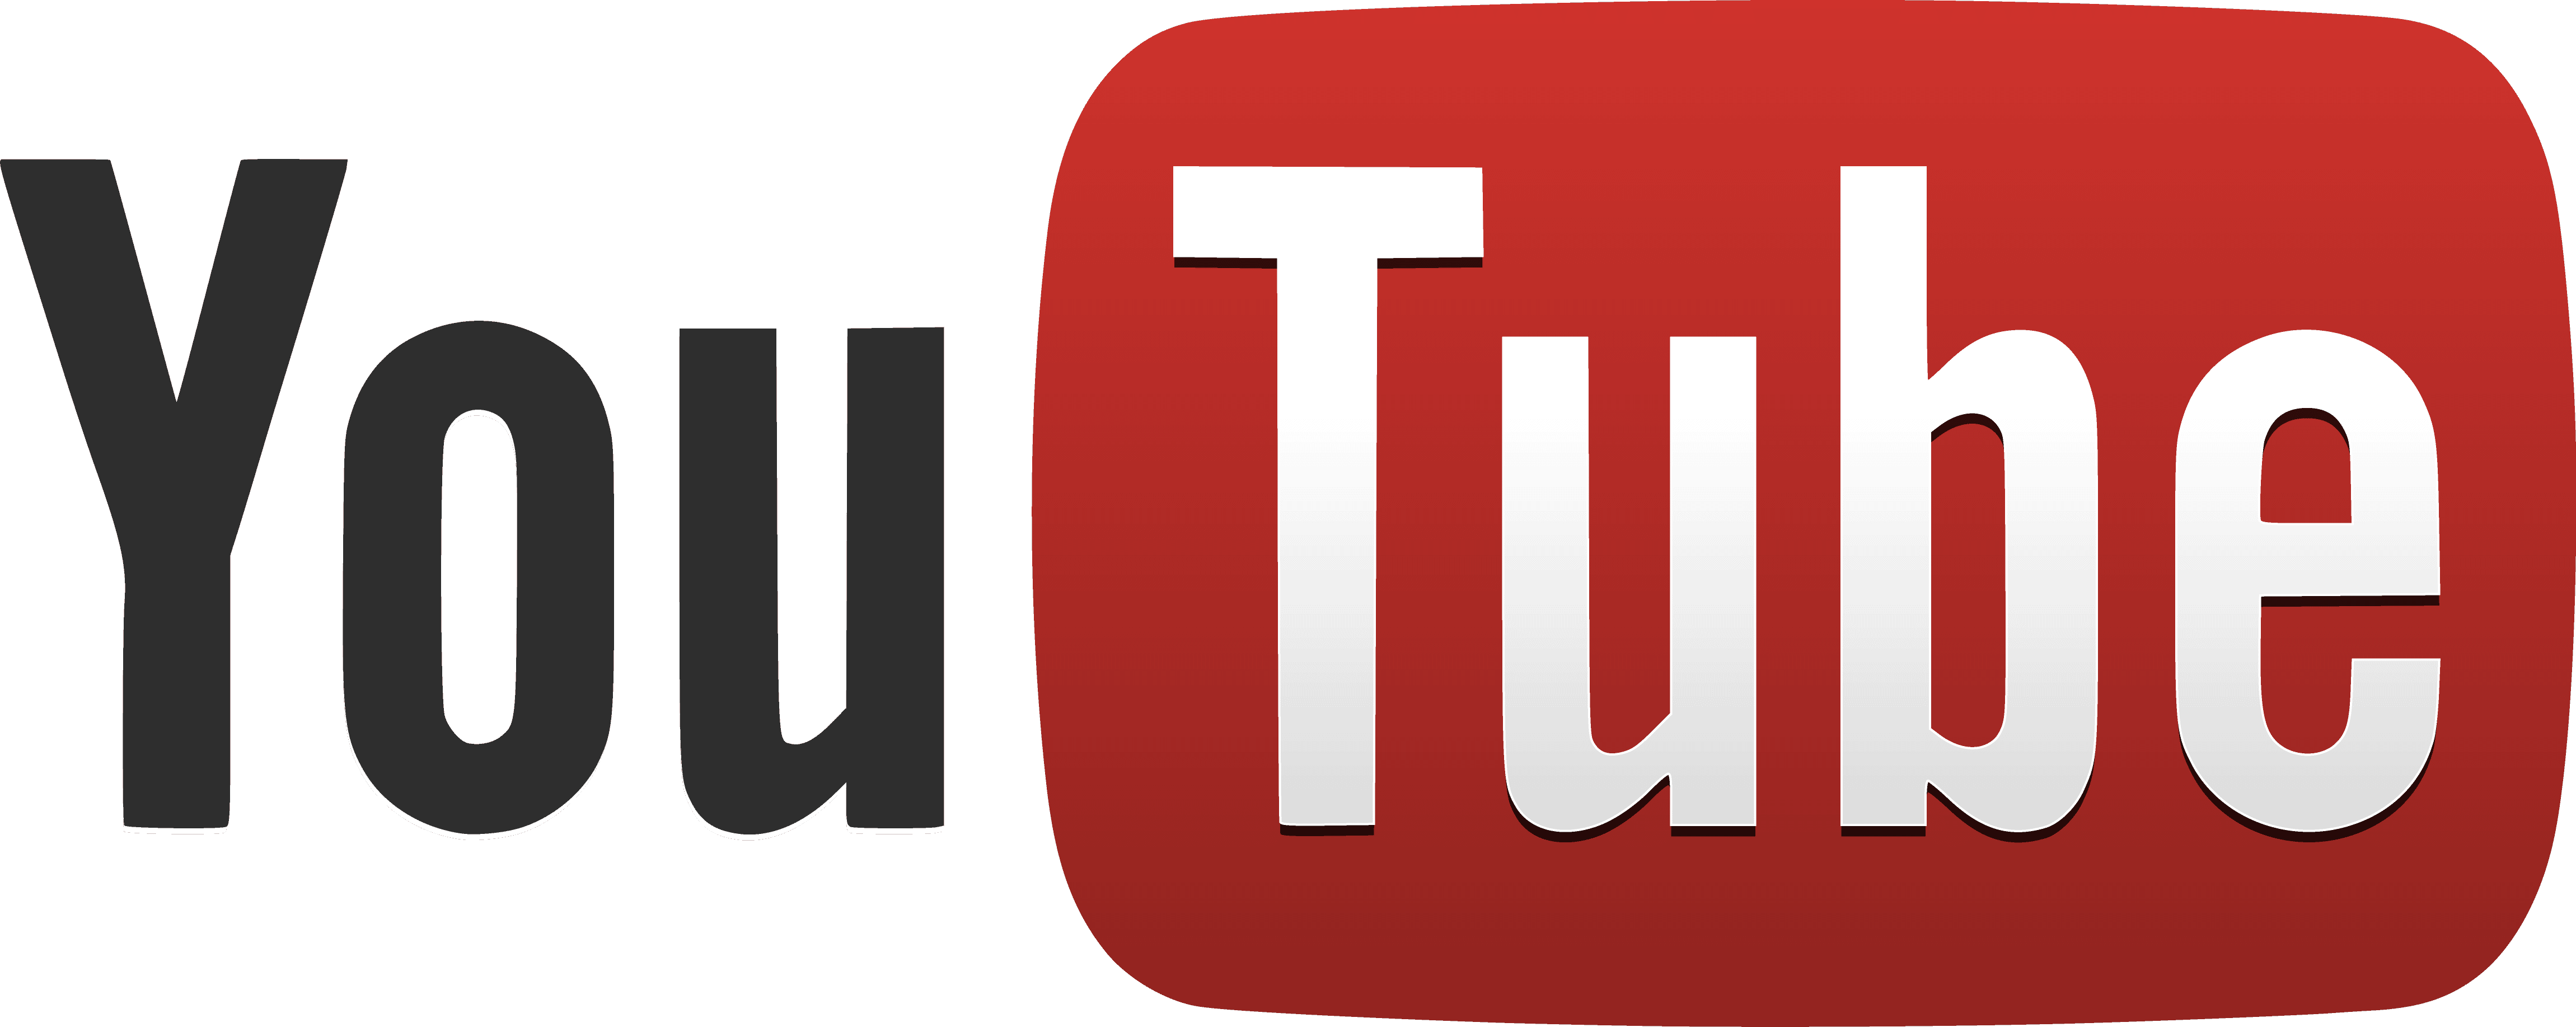 Riprodurre i video di youtube in background con Android